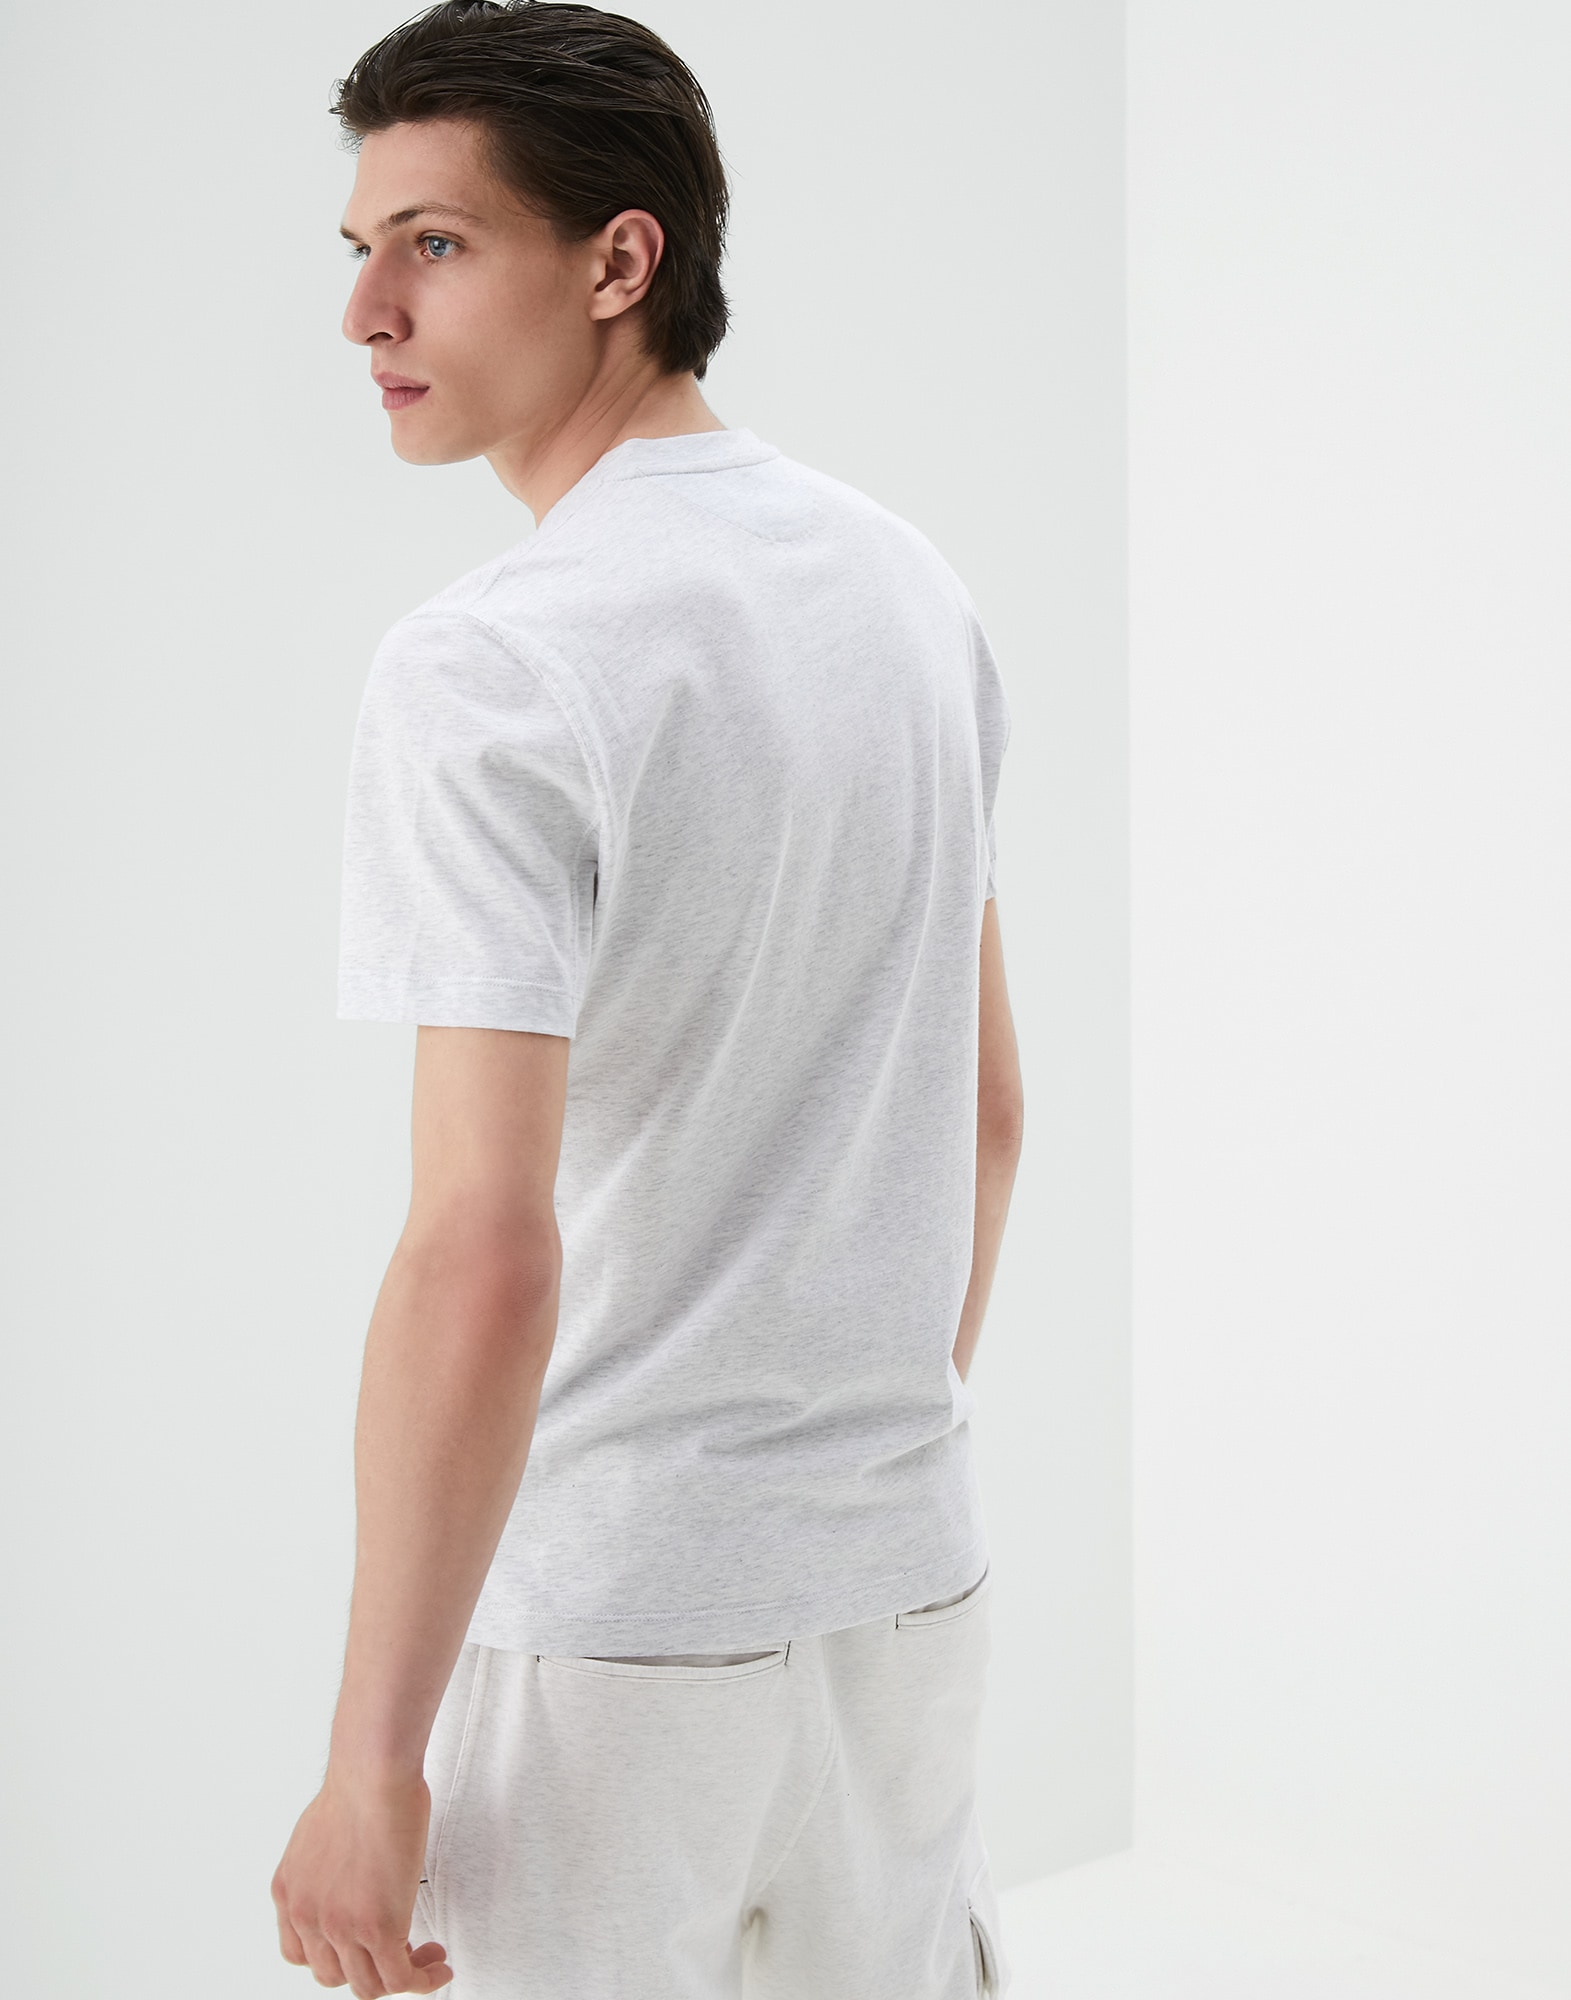 Short Sleeve T-Shirt Pearl Grey Man 2 - Brunello Cucinelli